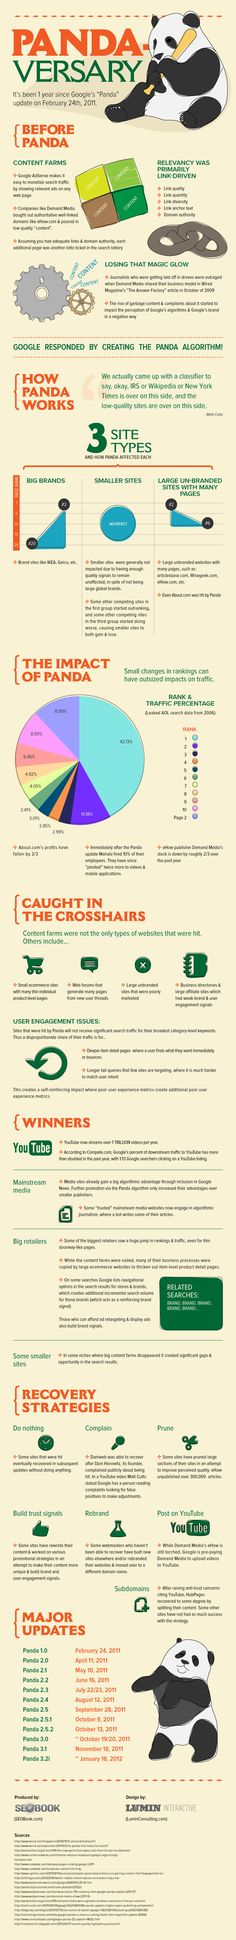 Panda versary by Seobook Marketing Program, Seo Marketing, Online Marketing, Digital Marketing, Seo Online, Watch Blog, Seo Sem, Google Search Results, Along The Way